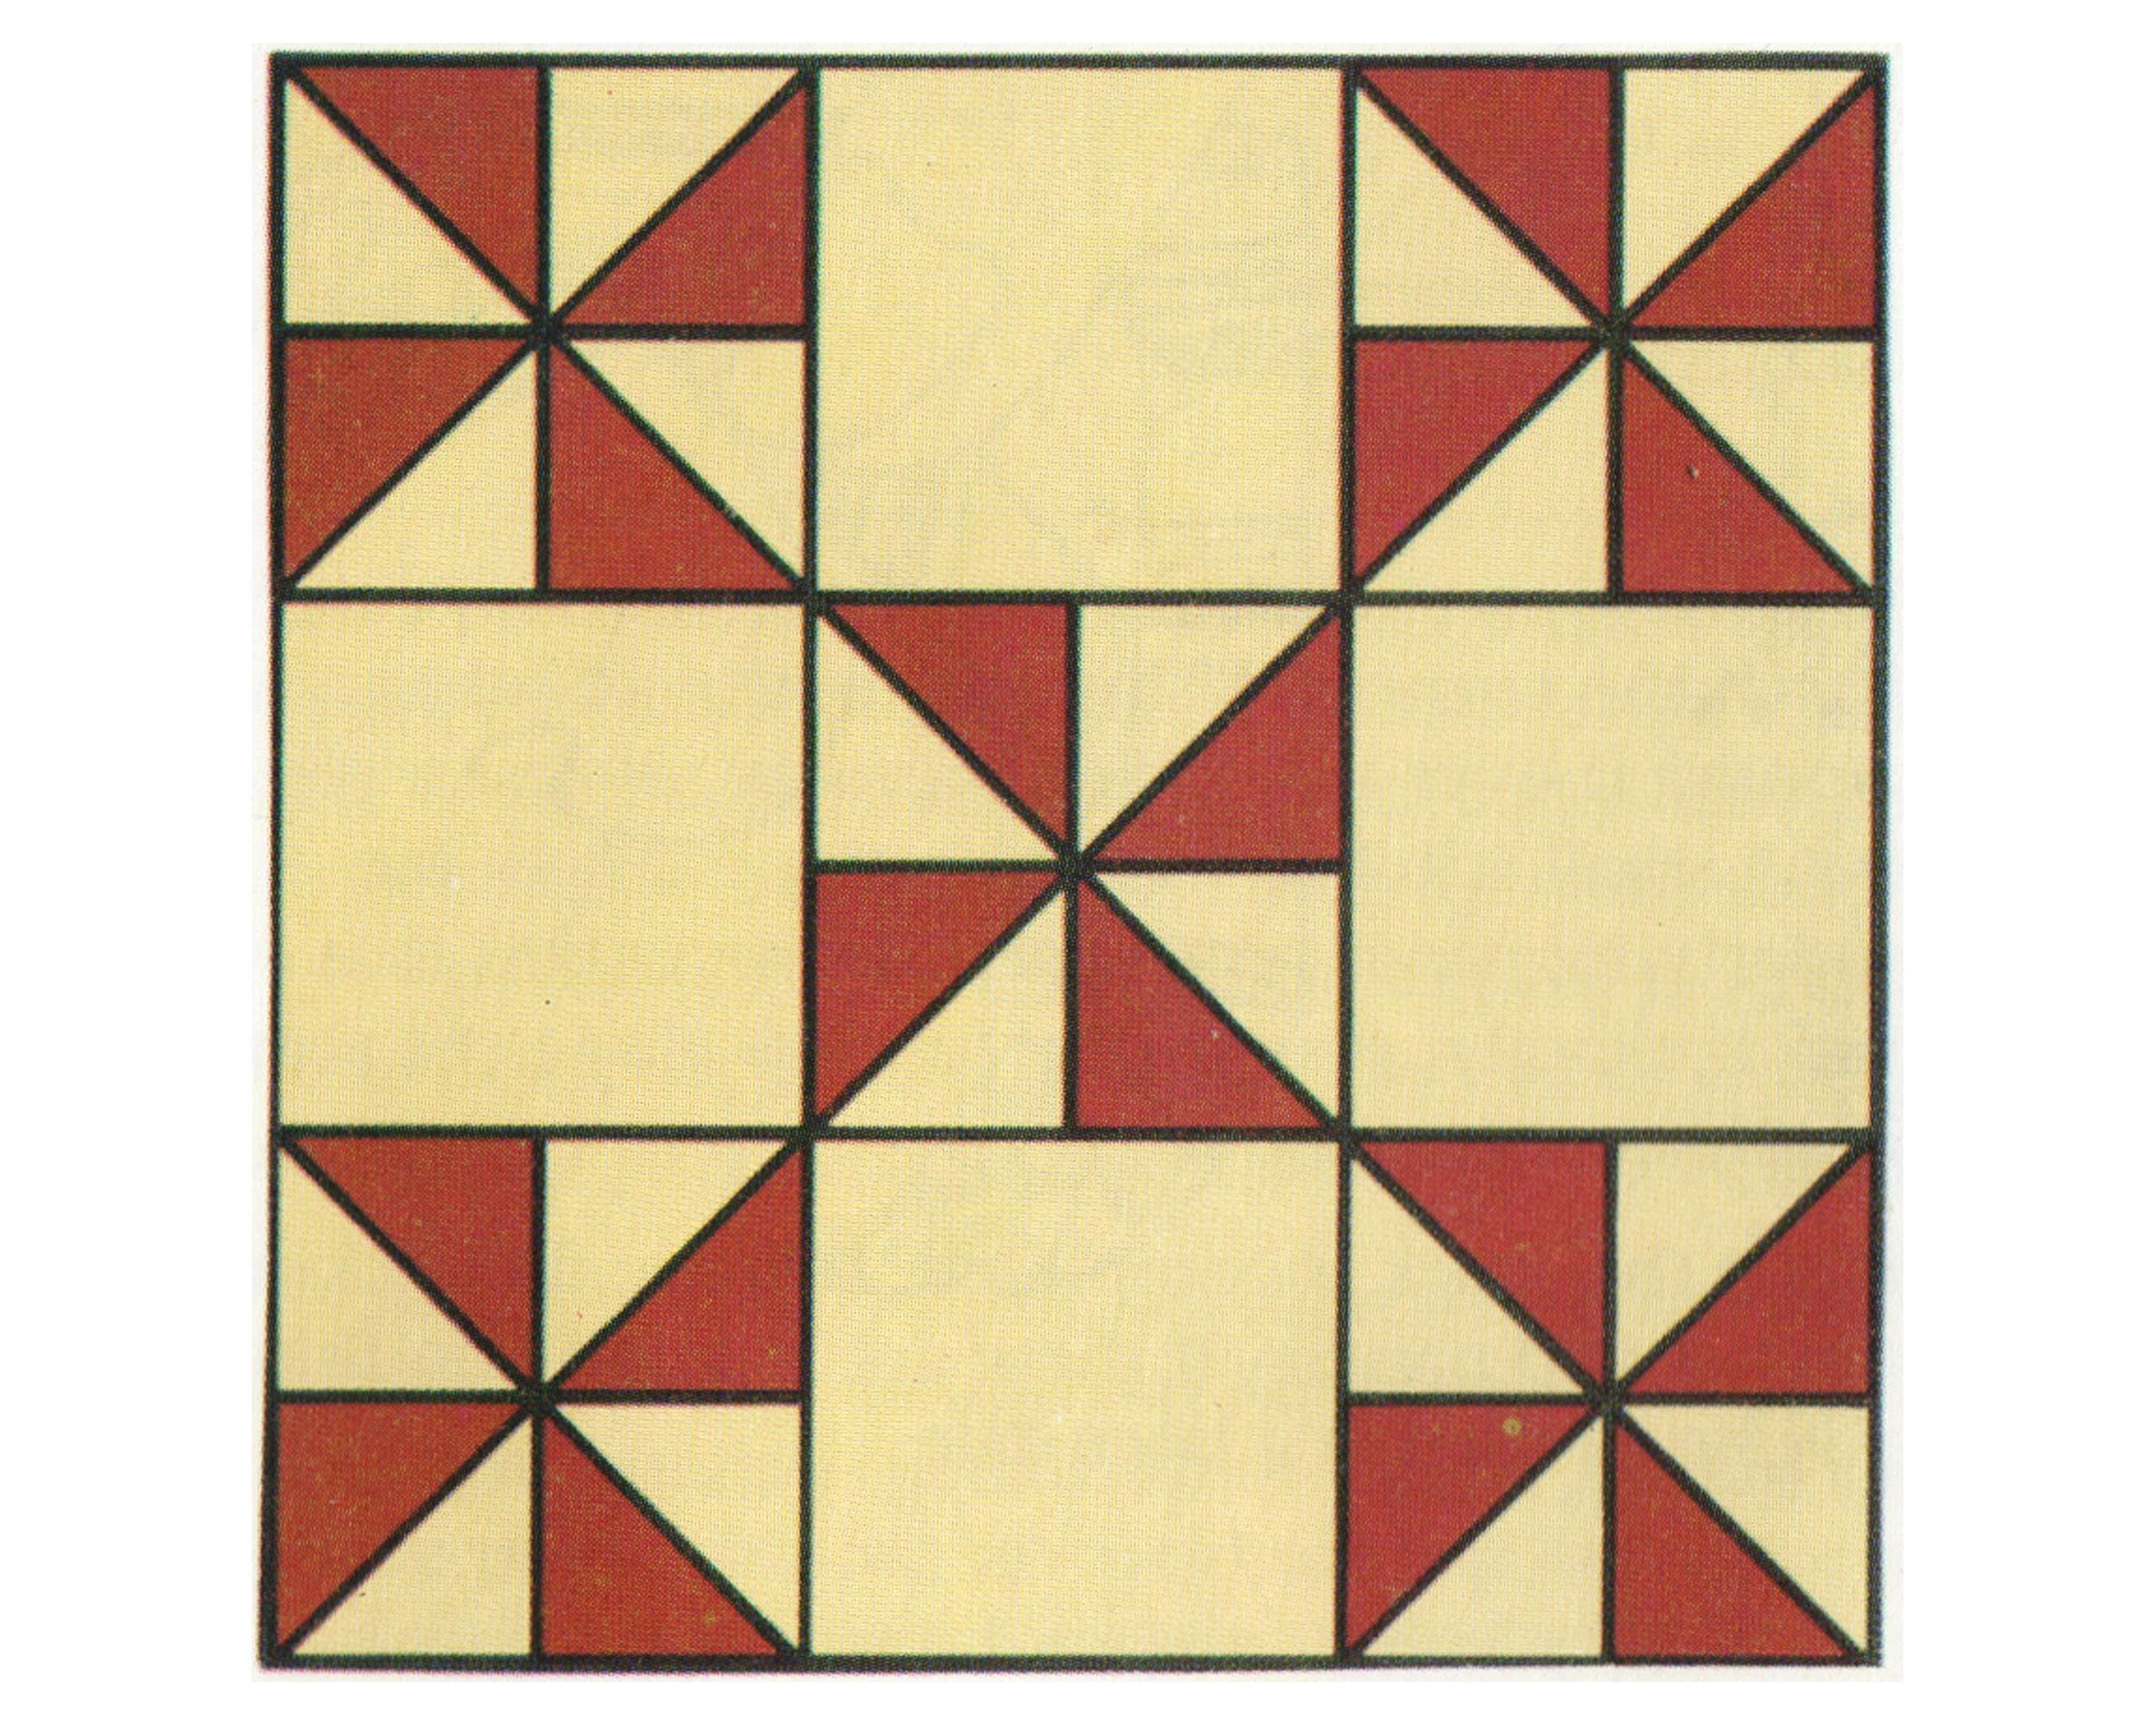 Pinwheel Quilt Block Quilting Templates - 12 Inch Square - The Quiltery